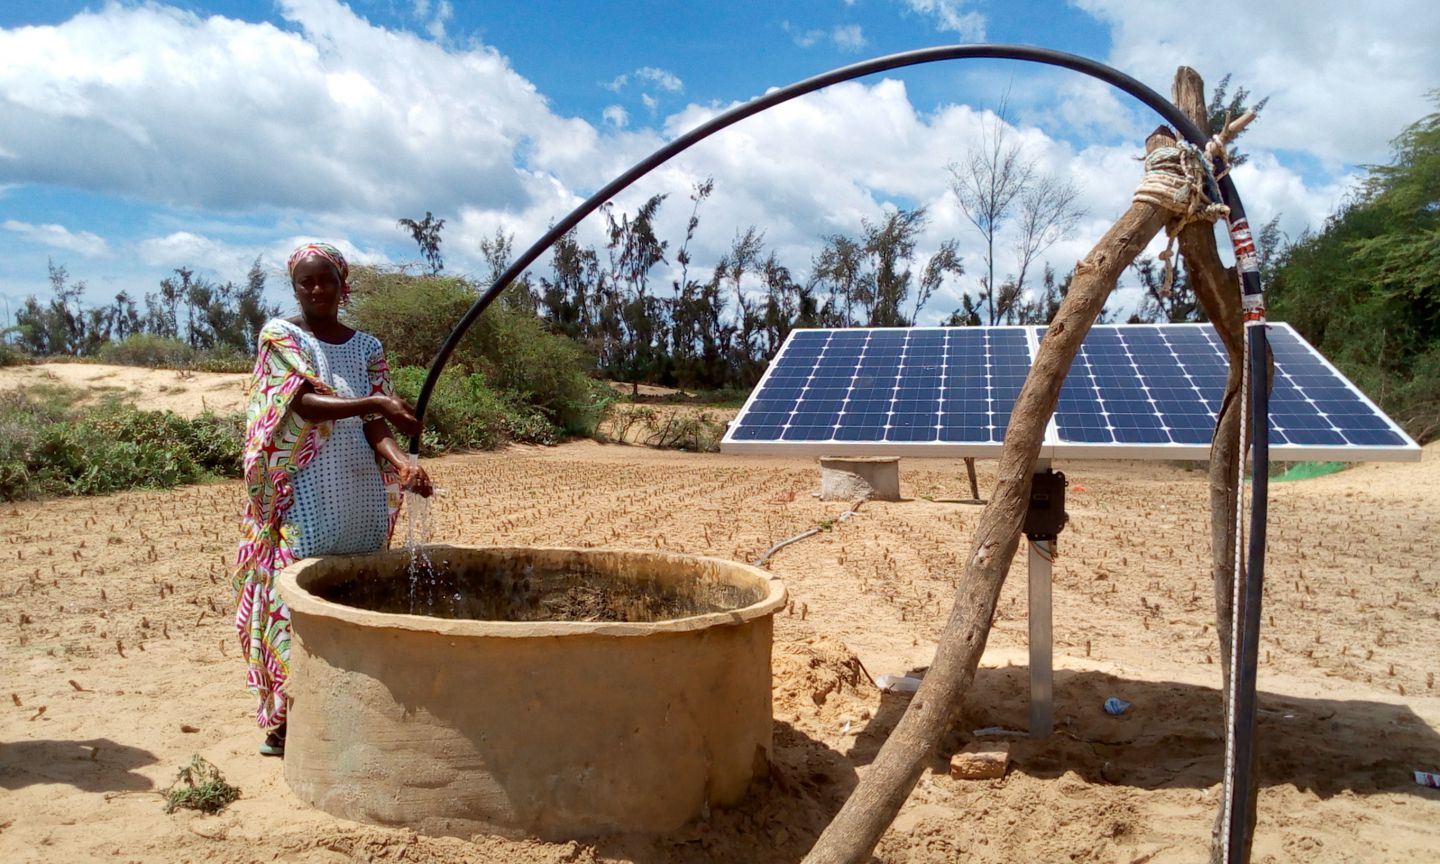 The market gardening entrepreneur modernising rural agriculture, with the help of solar power